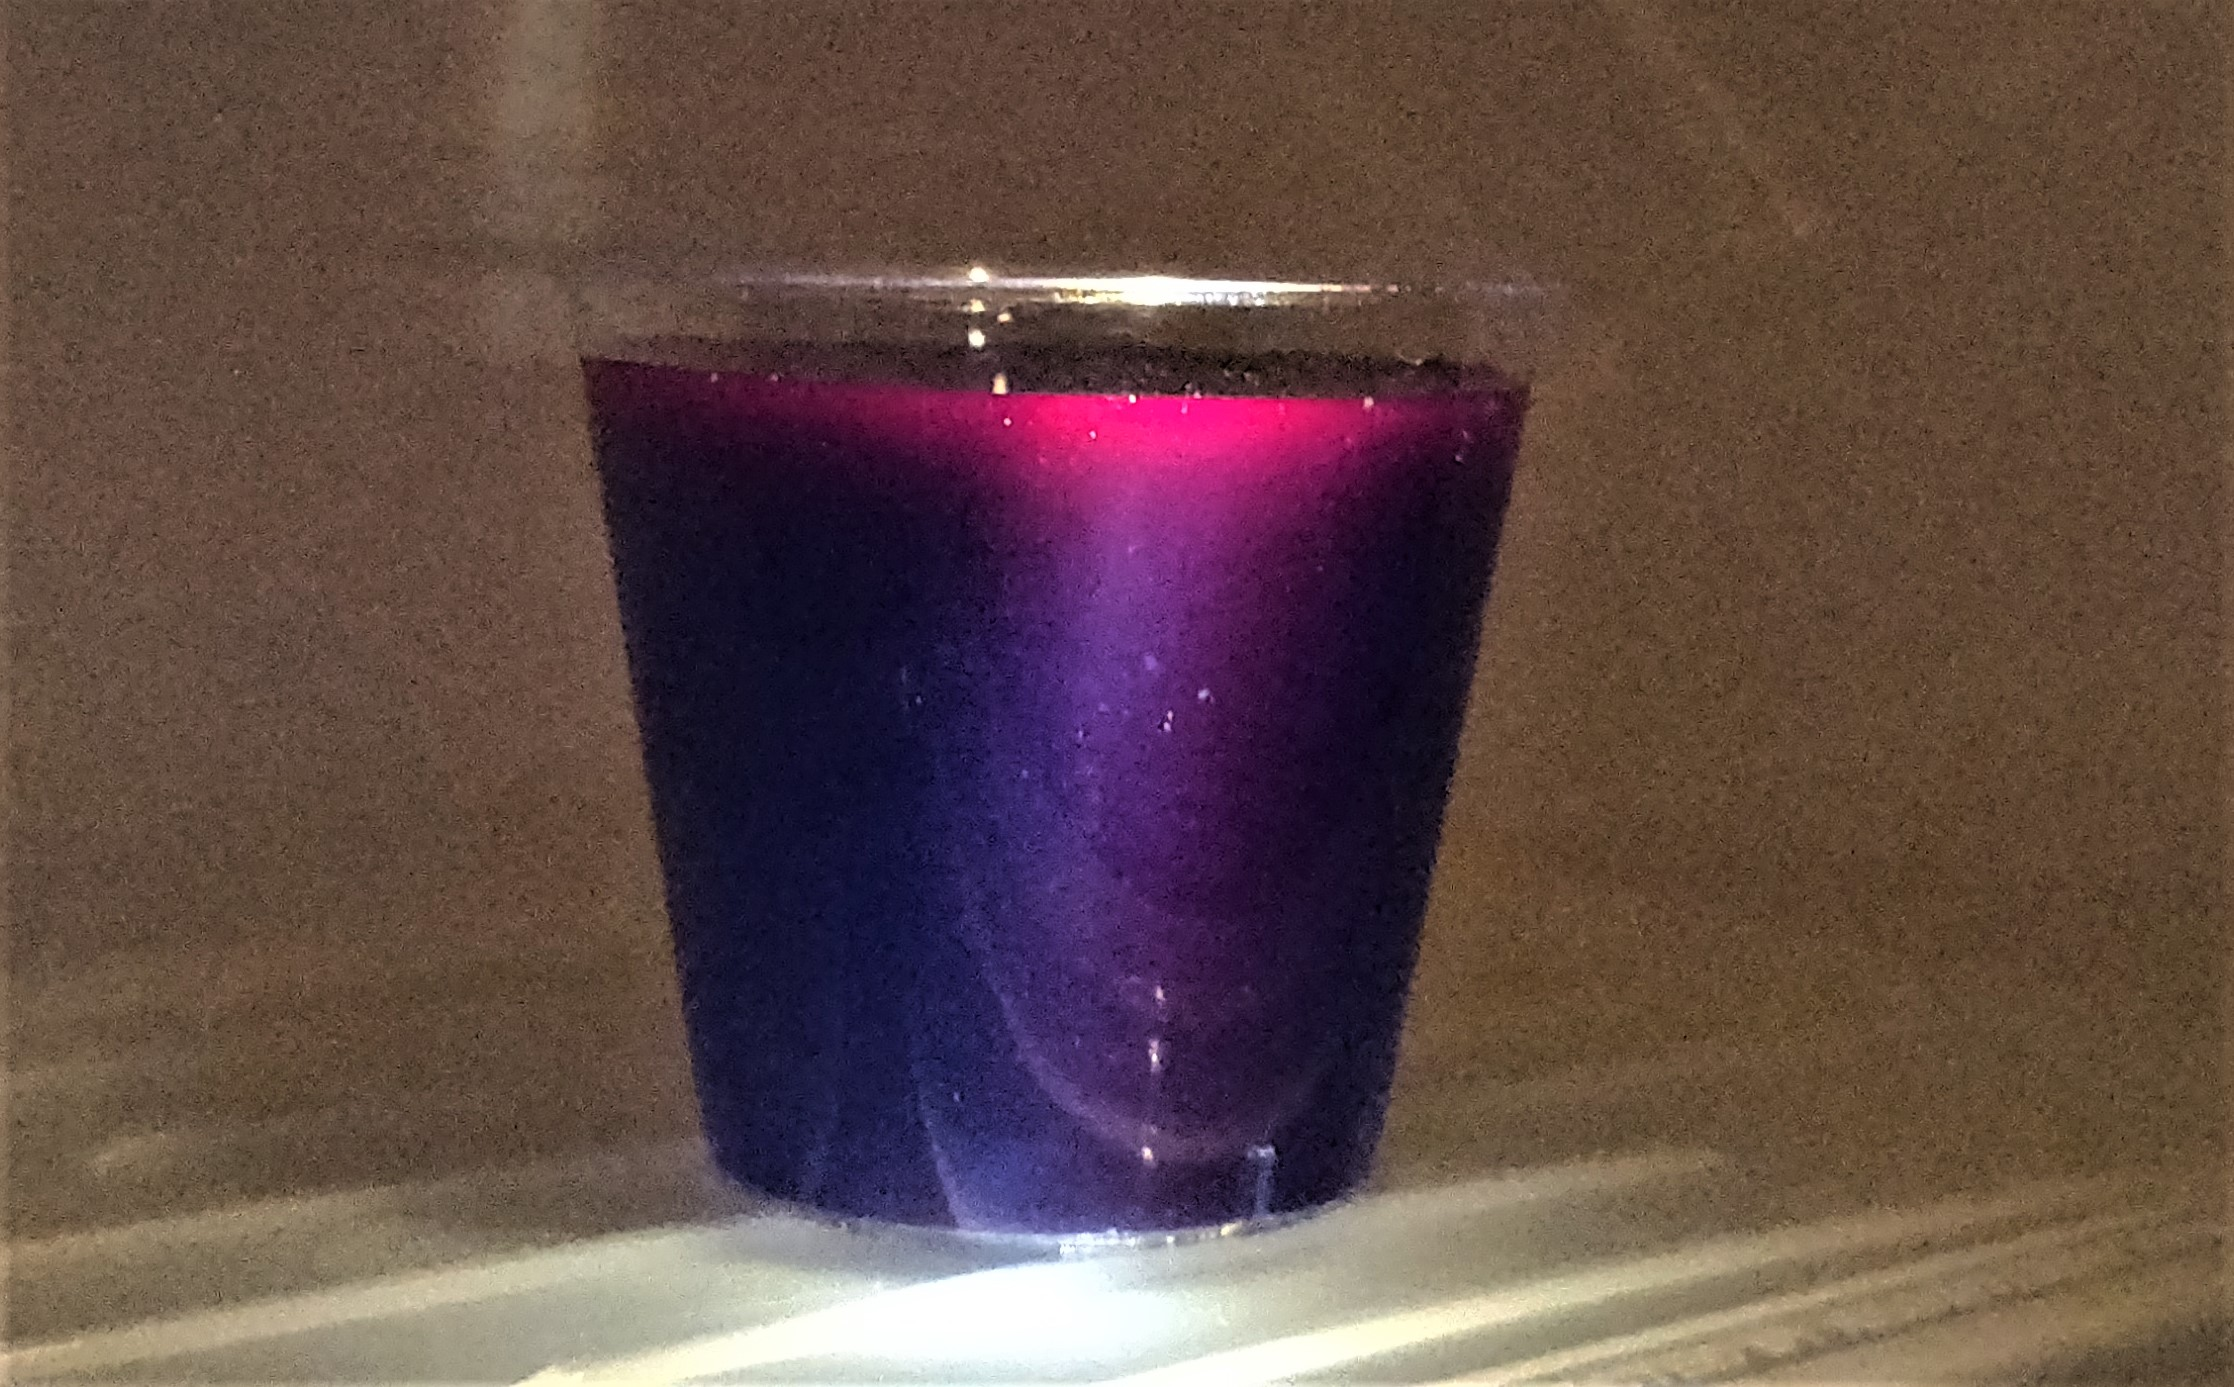 The blue colour scatters light and looks pink where the light hits it to make a rainbow in just one cup!